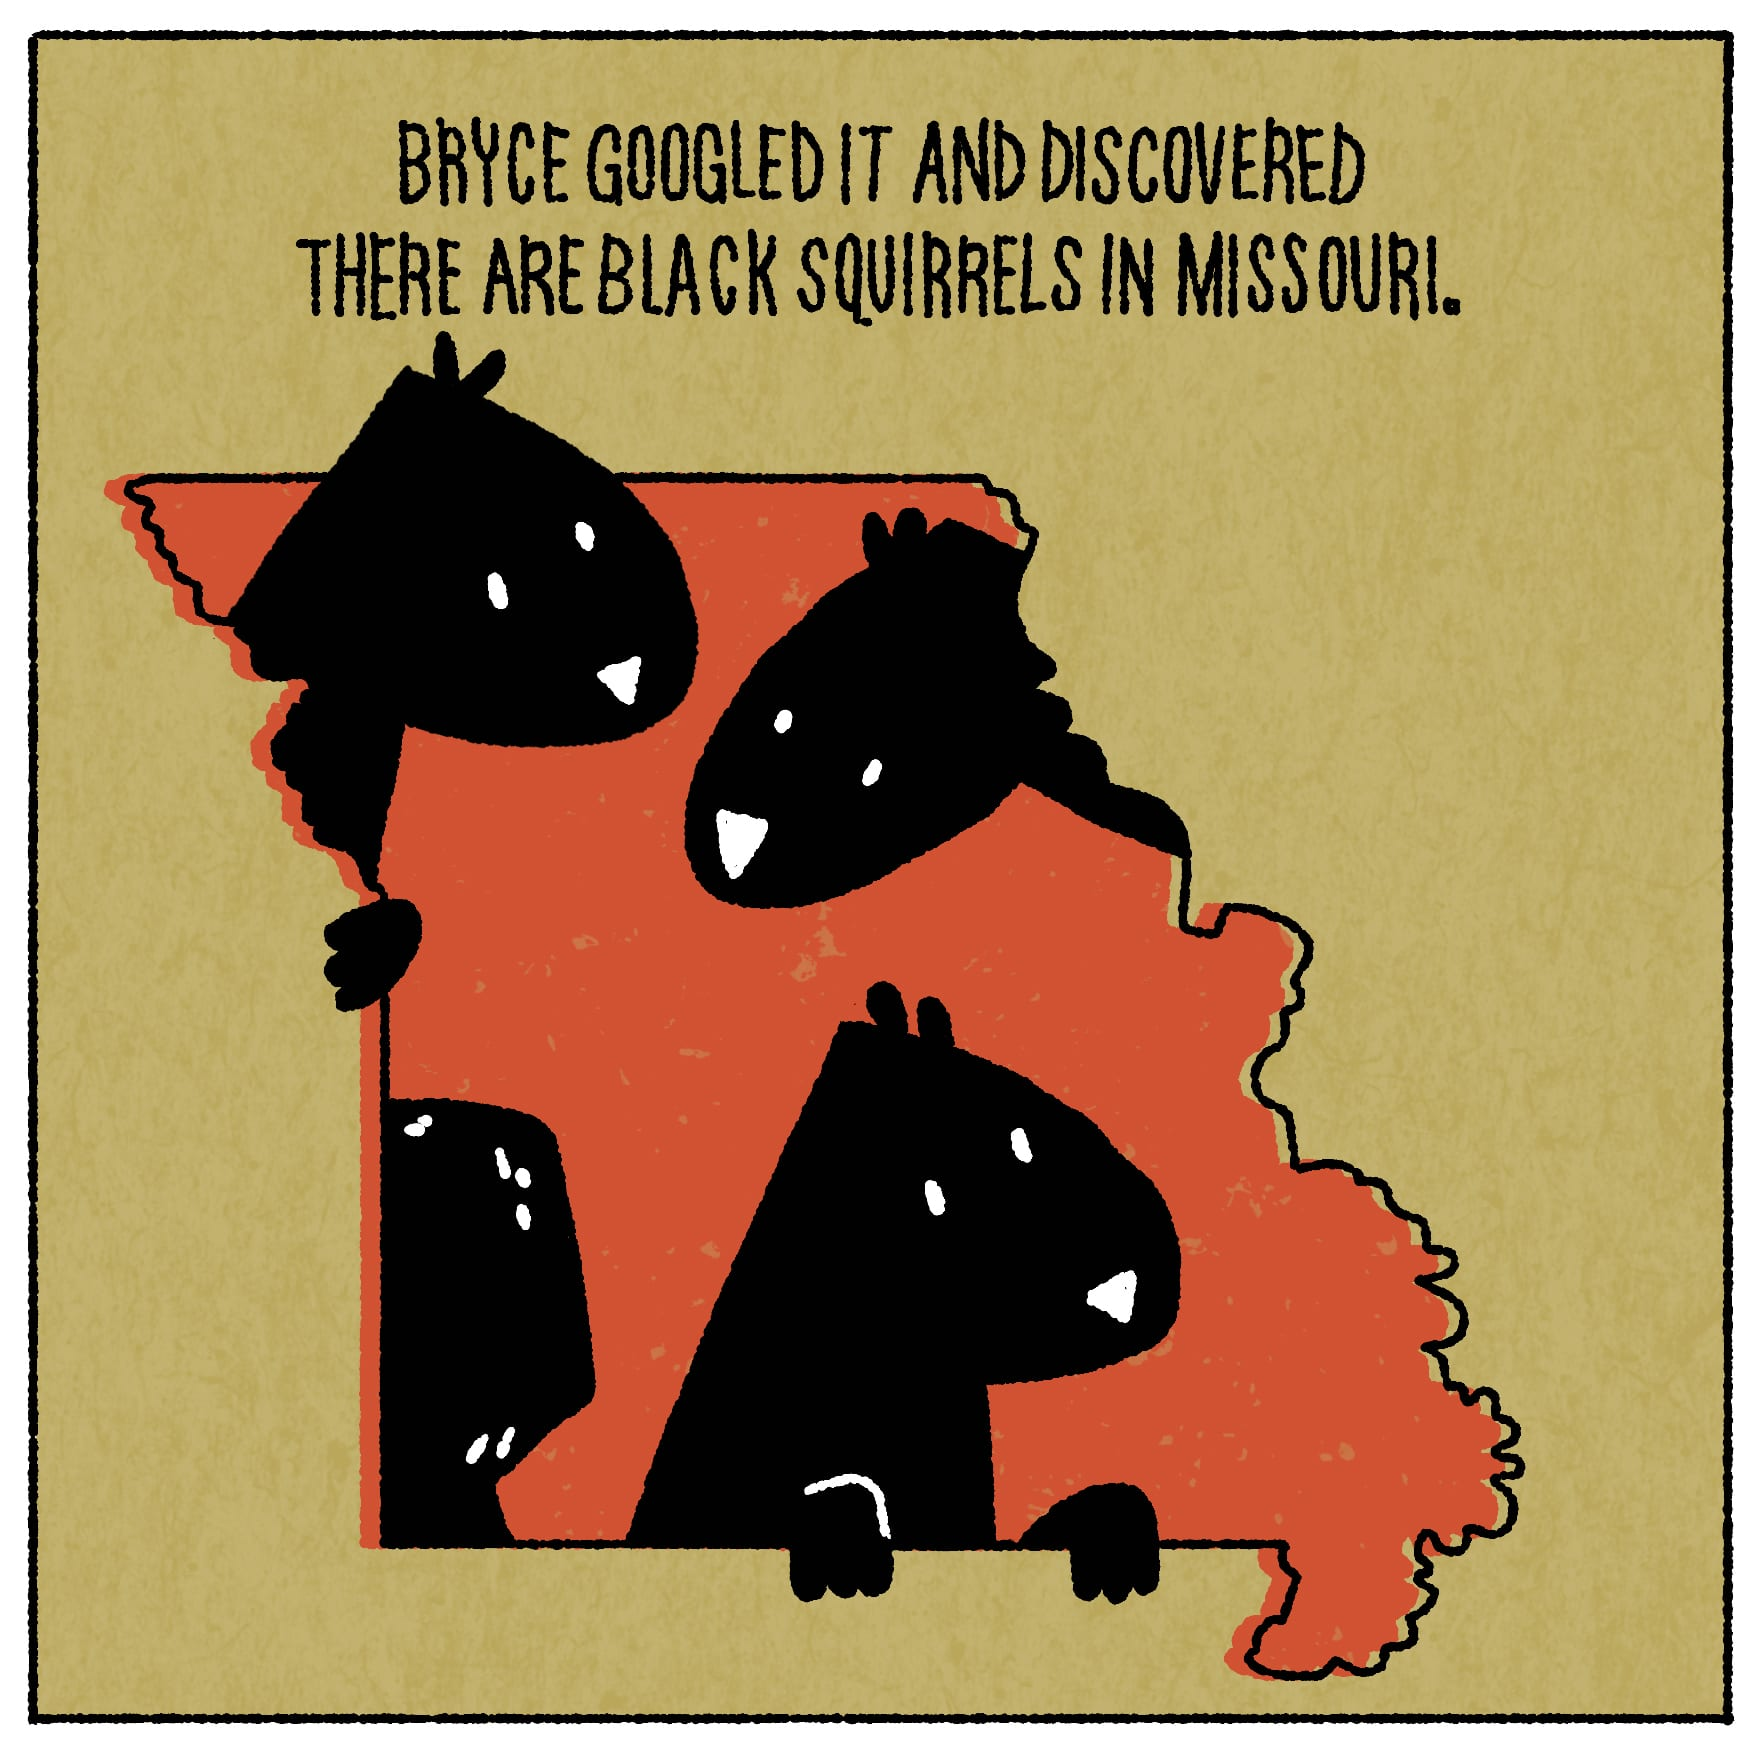 Bryce Googled it and discovered there are black squirrels in Missouri.